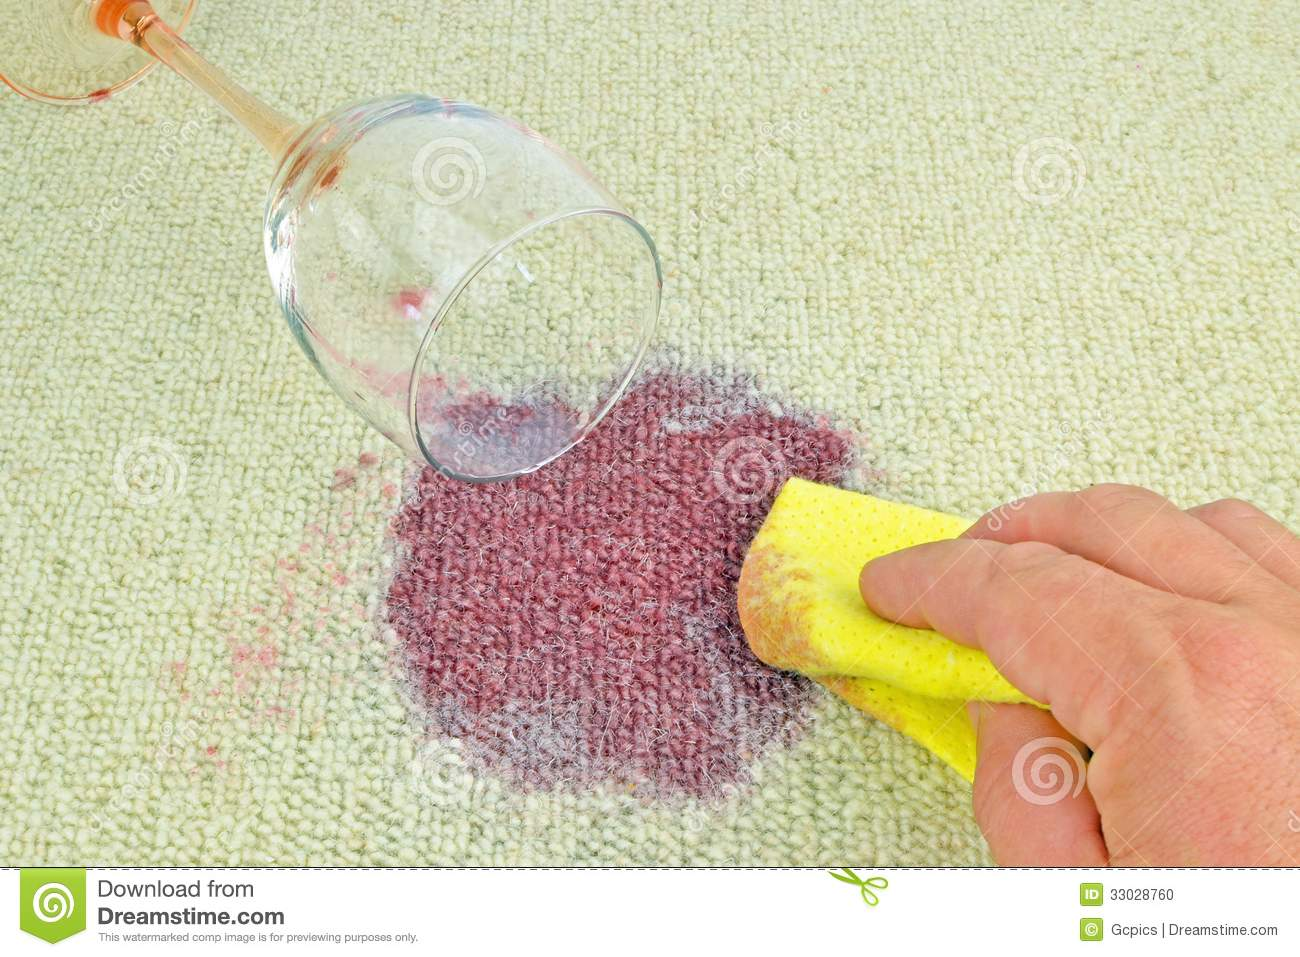 Vin Rouge Sur Tapis Vin Rouge Sur Un Tapis Photo Stock Image Du Main Glace 33028760